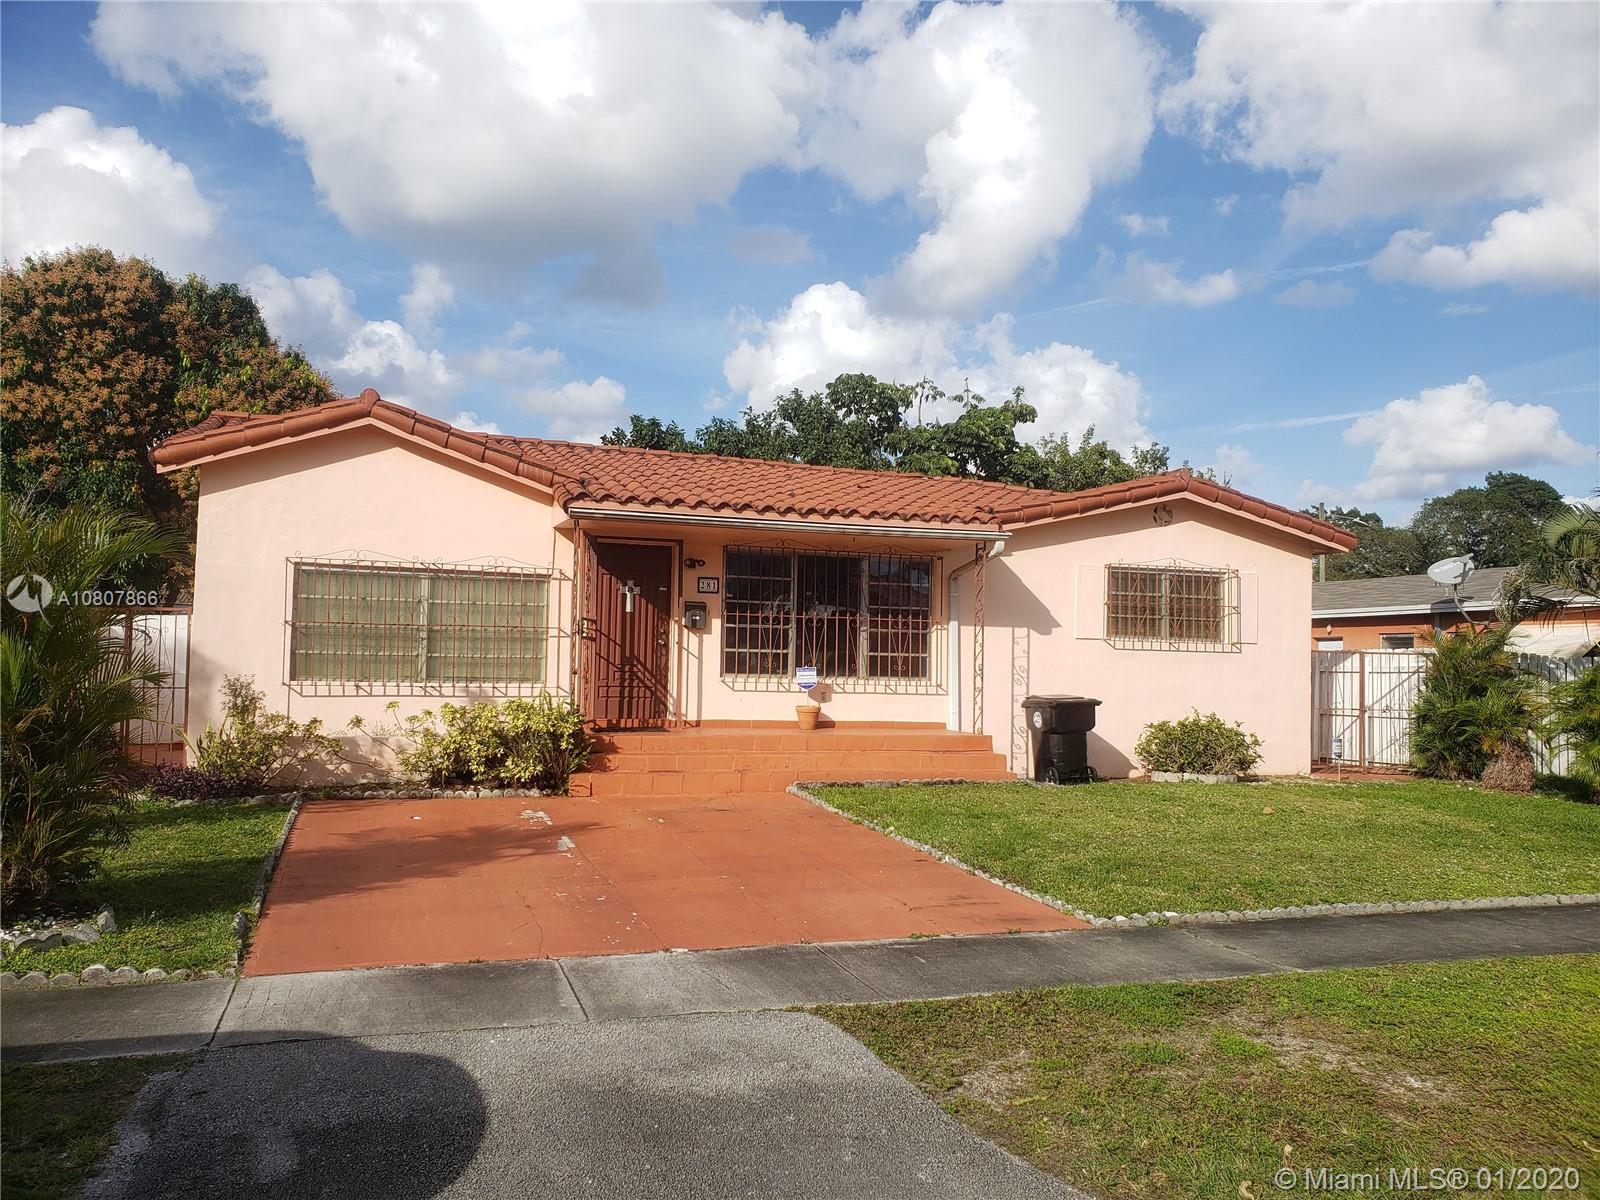 Wonderful Single-family home with two (2) Separate in-law quarters with Private Entrances.